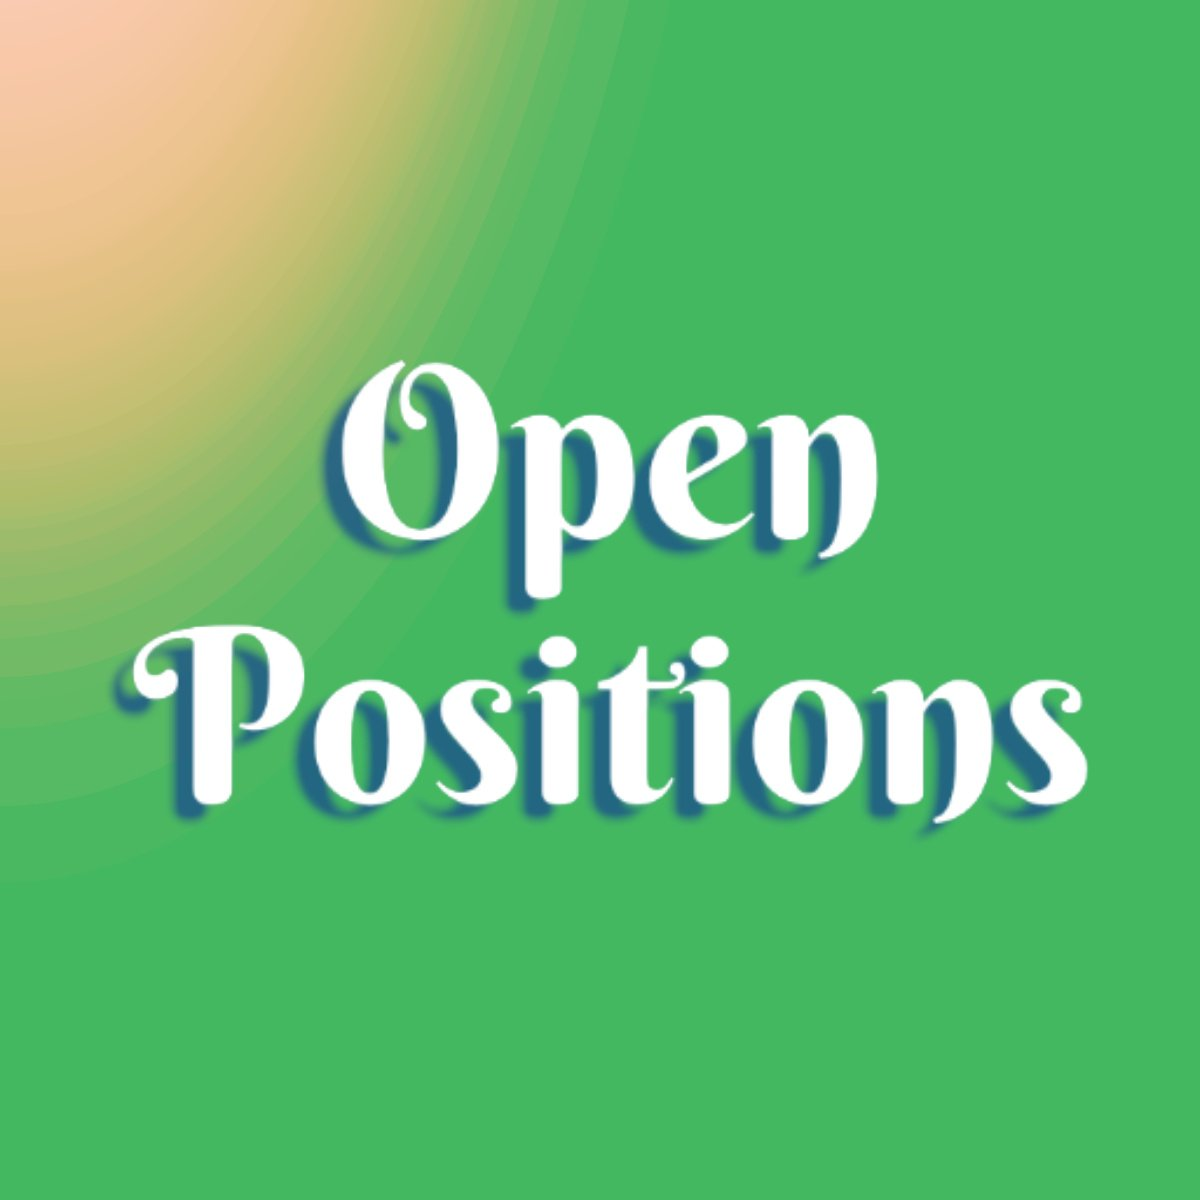 Check out our open HR positions today! Click below to apply: https://tinyurl.com/yawtpkbs  #hr #hrjobs #humanresources #jobs #hiring #careers #staffing #workplace #employment #recruiting #arlingtonjobs #arlingtonhr #arlingtonspirit